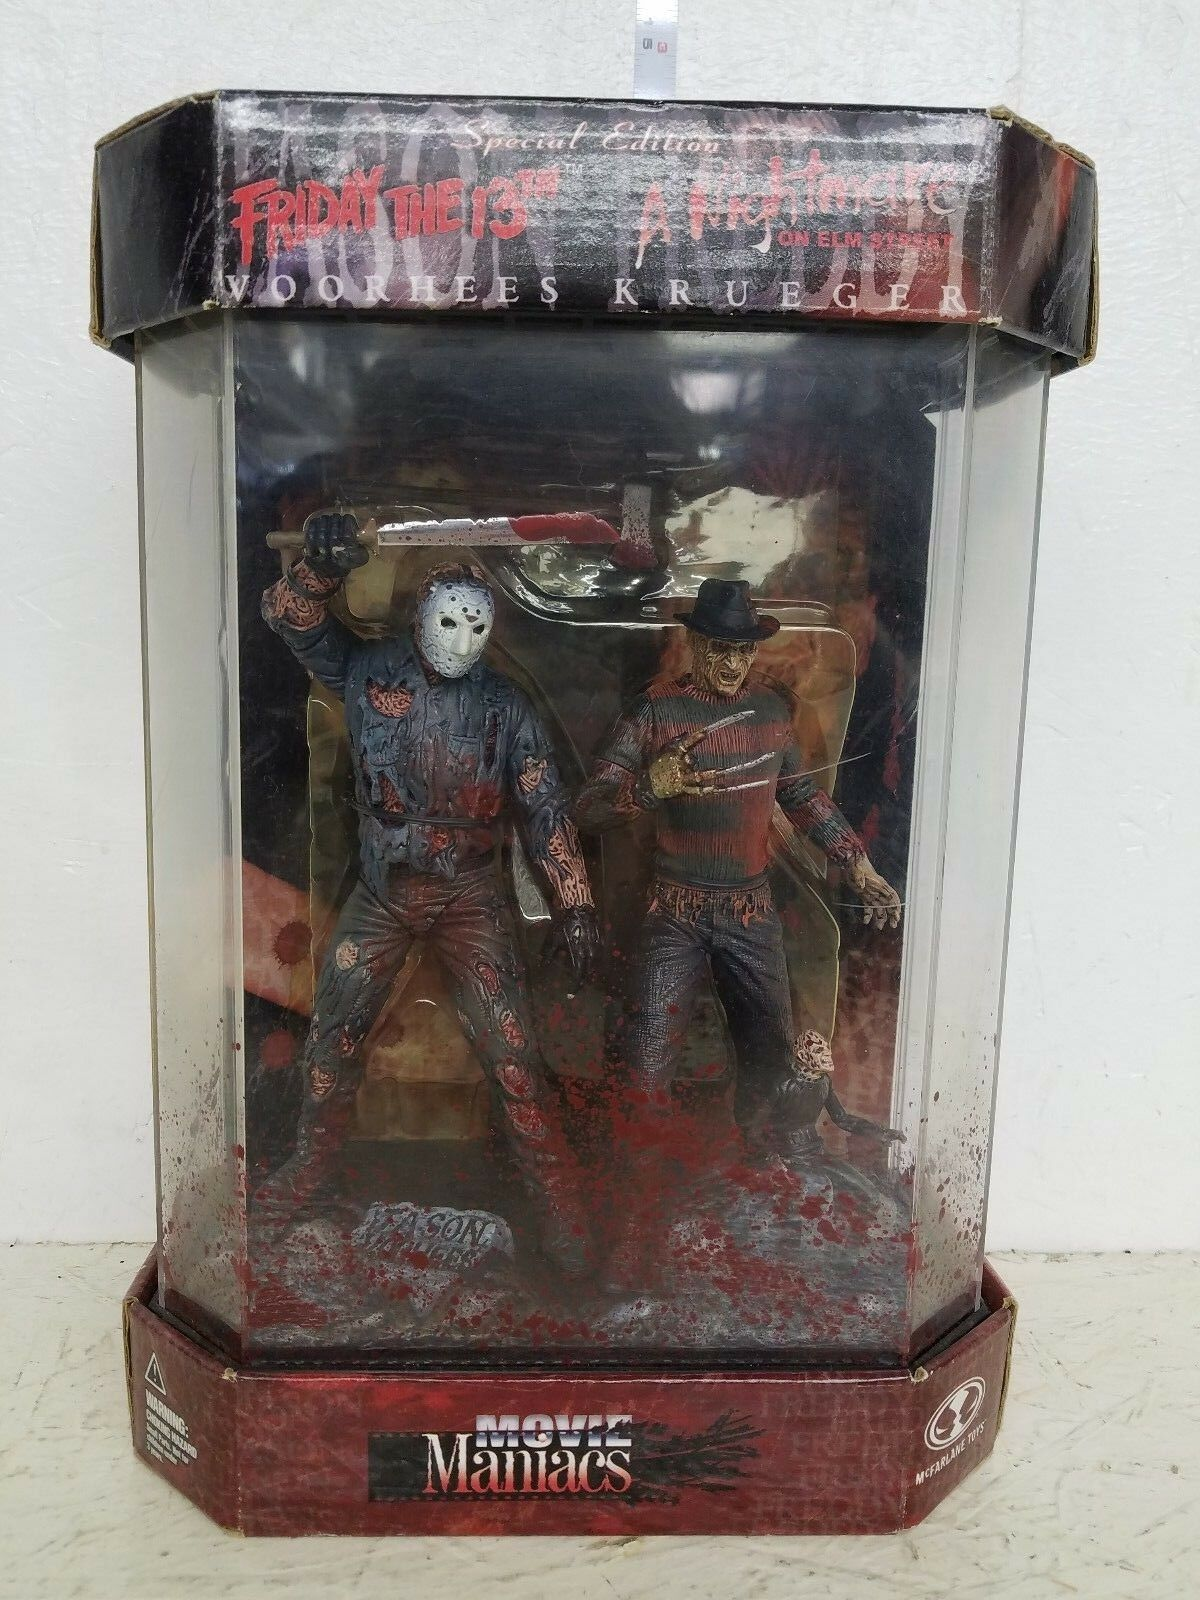 McFarlane Special Edition Jason Voorhees and Frossody Kruger Figure set B